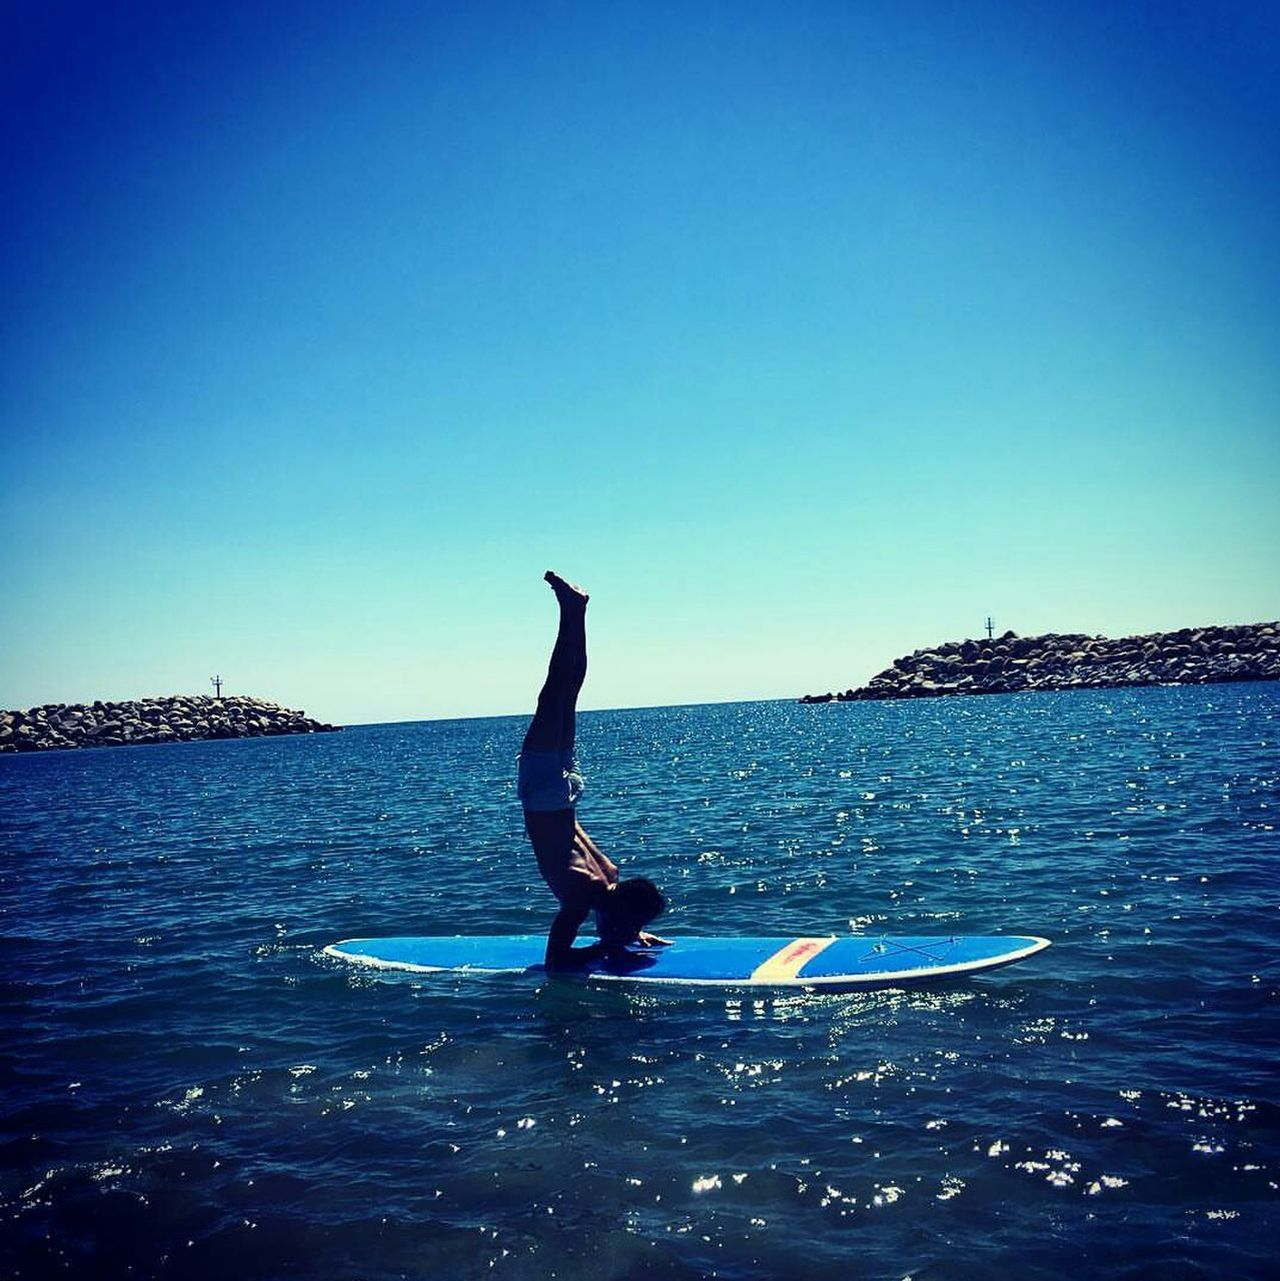 Sea Water Outdoors Day First Eyeem Photo Yoga Yoga Practice Paddleboarding Paddle Paddleboard Me Beach Pinchamayurasana Pincha Photooftheday Photographer Photographylovers Men Horizon Over Water